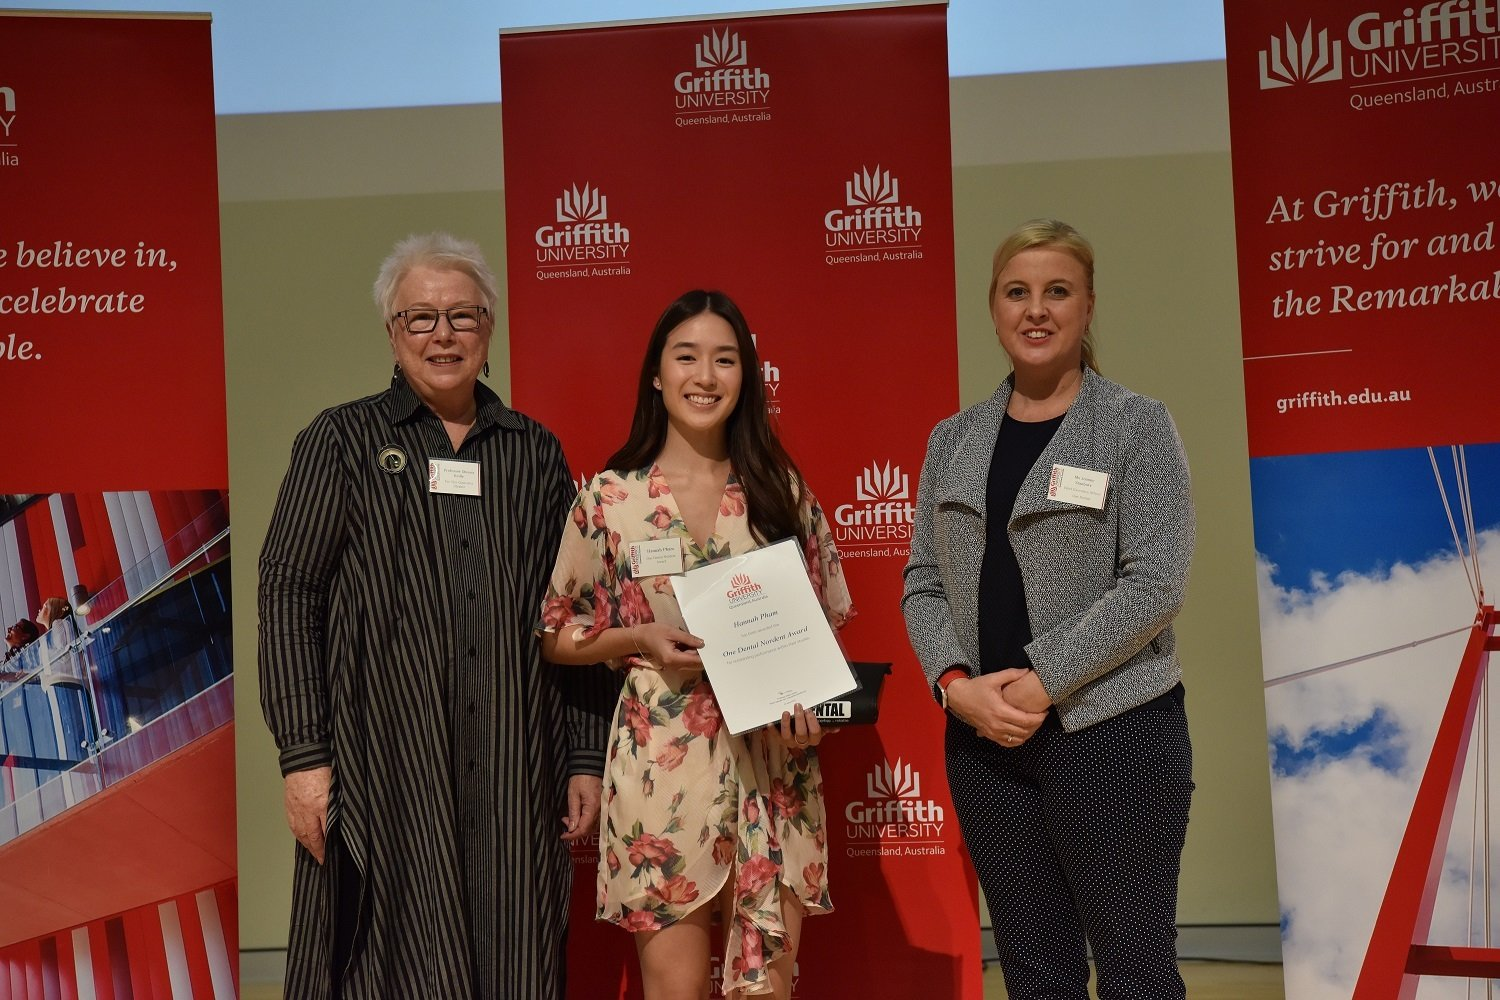 Griffith University Awards